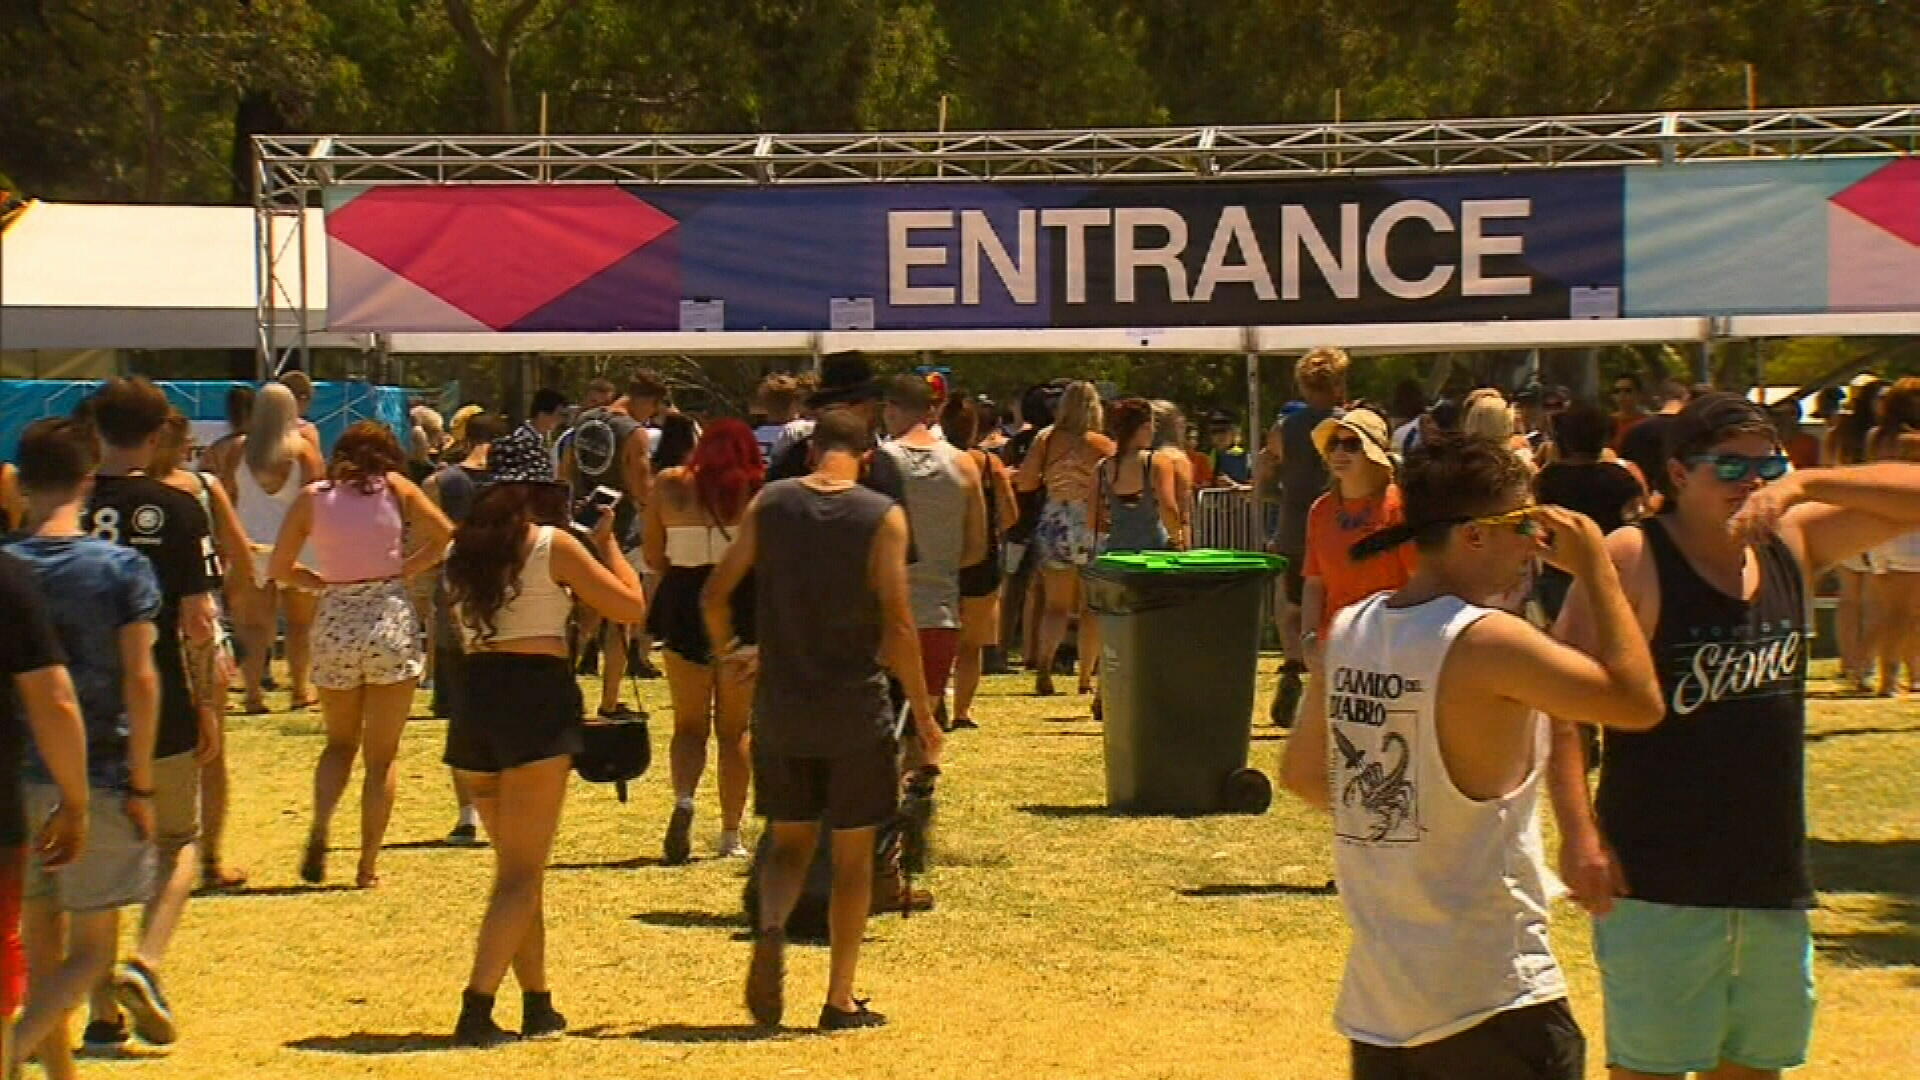 Drug dealers could face 25 years for music festival deaths